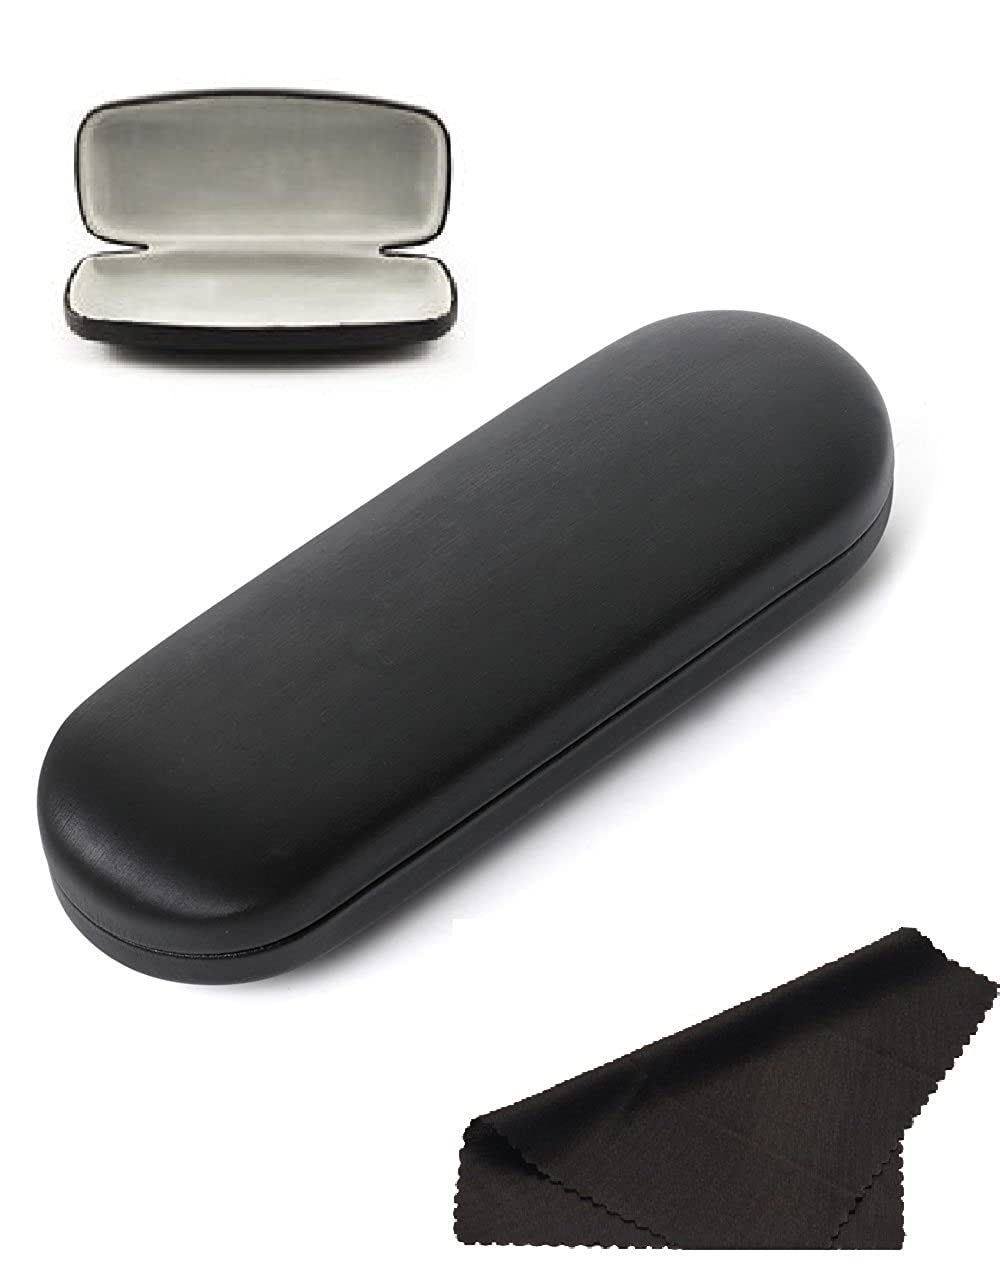 Glasses Case Hard Shell Holder For Reading Eyeglasses Eyewear W/Cleaning Cloth GC_FL_BLK